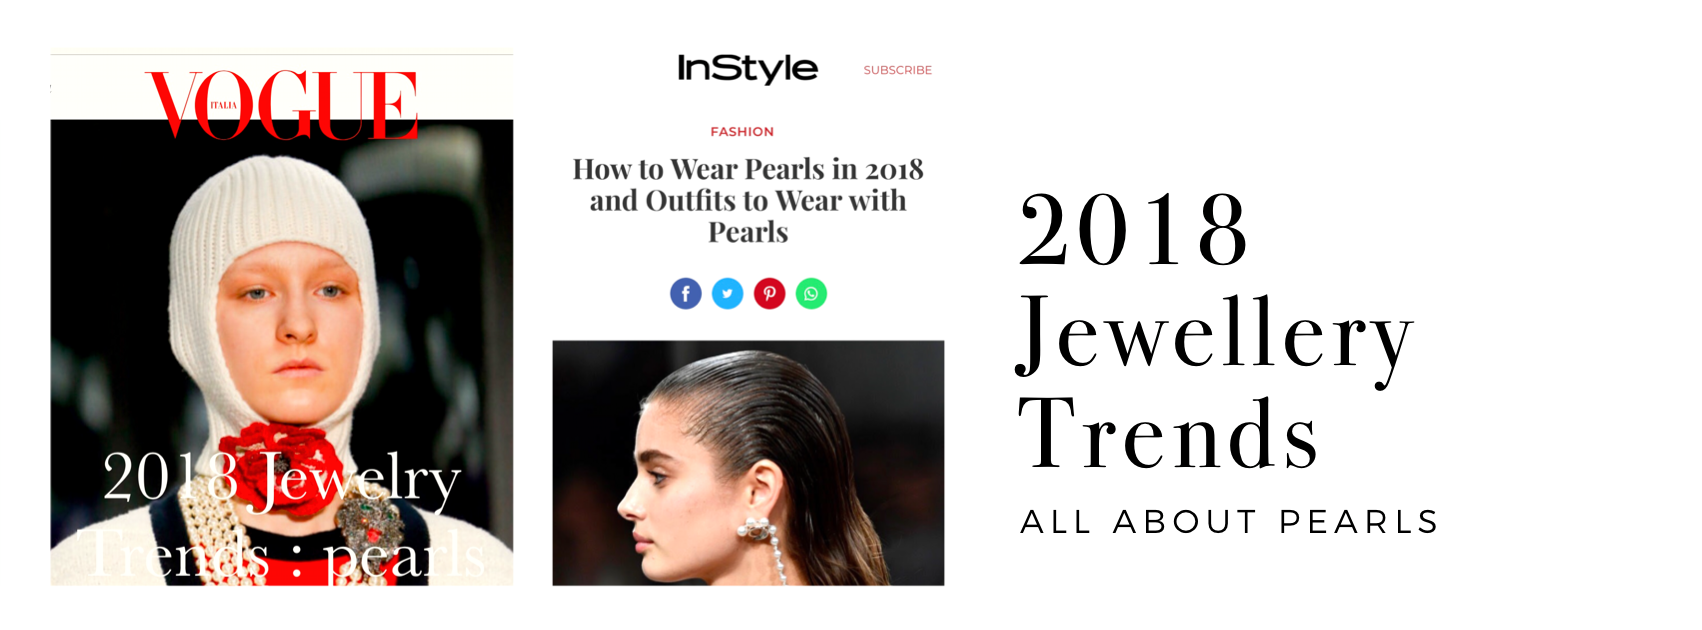 2018 Jewellery Trends - Pearls